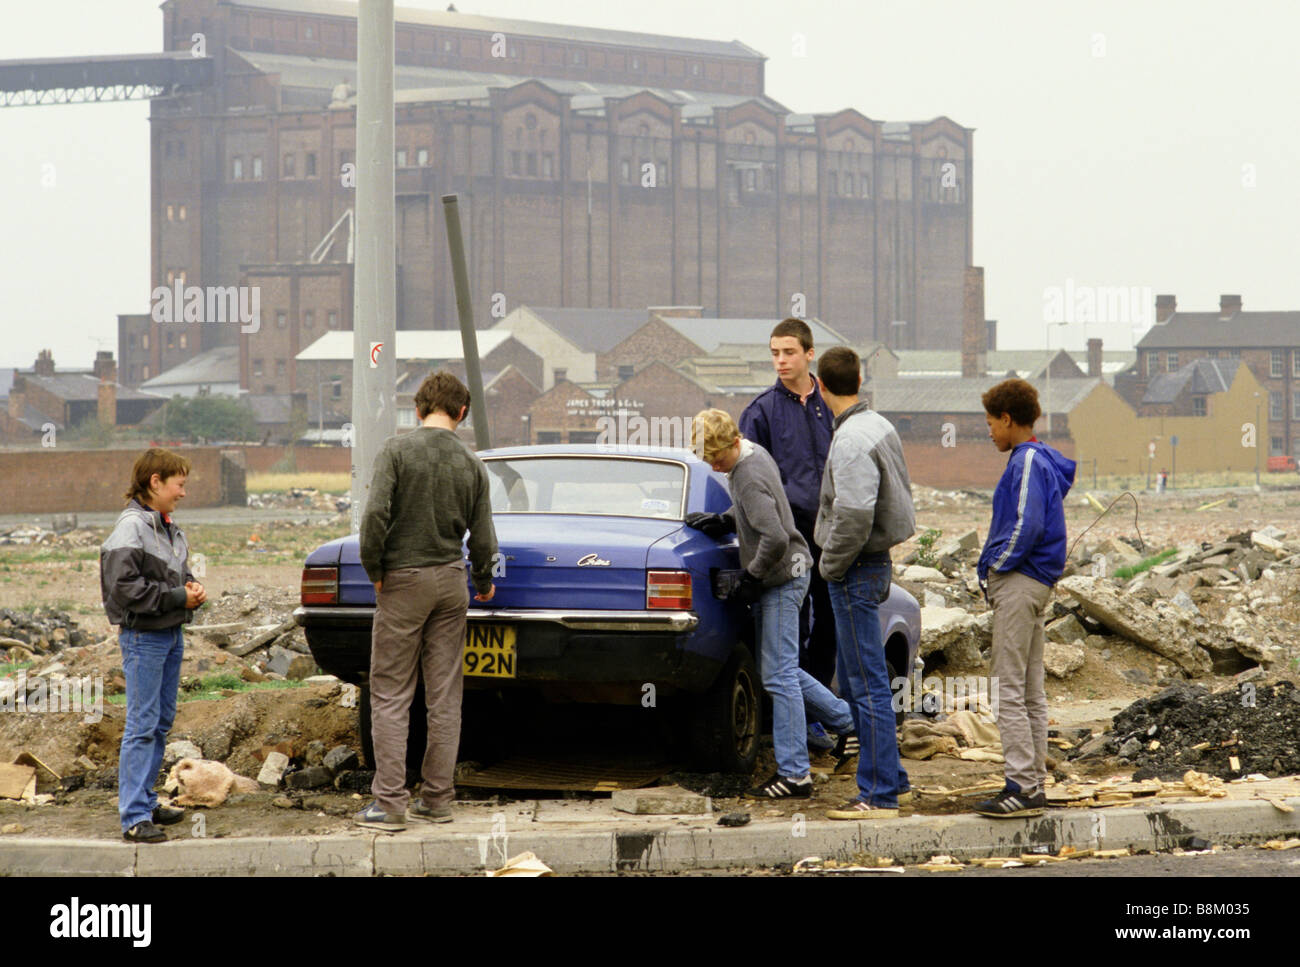 Toxteth Liverpool Crime